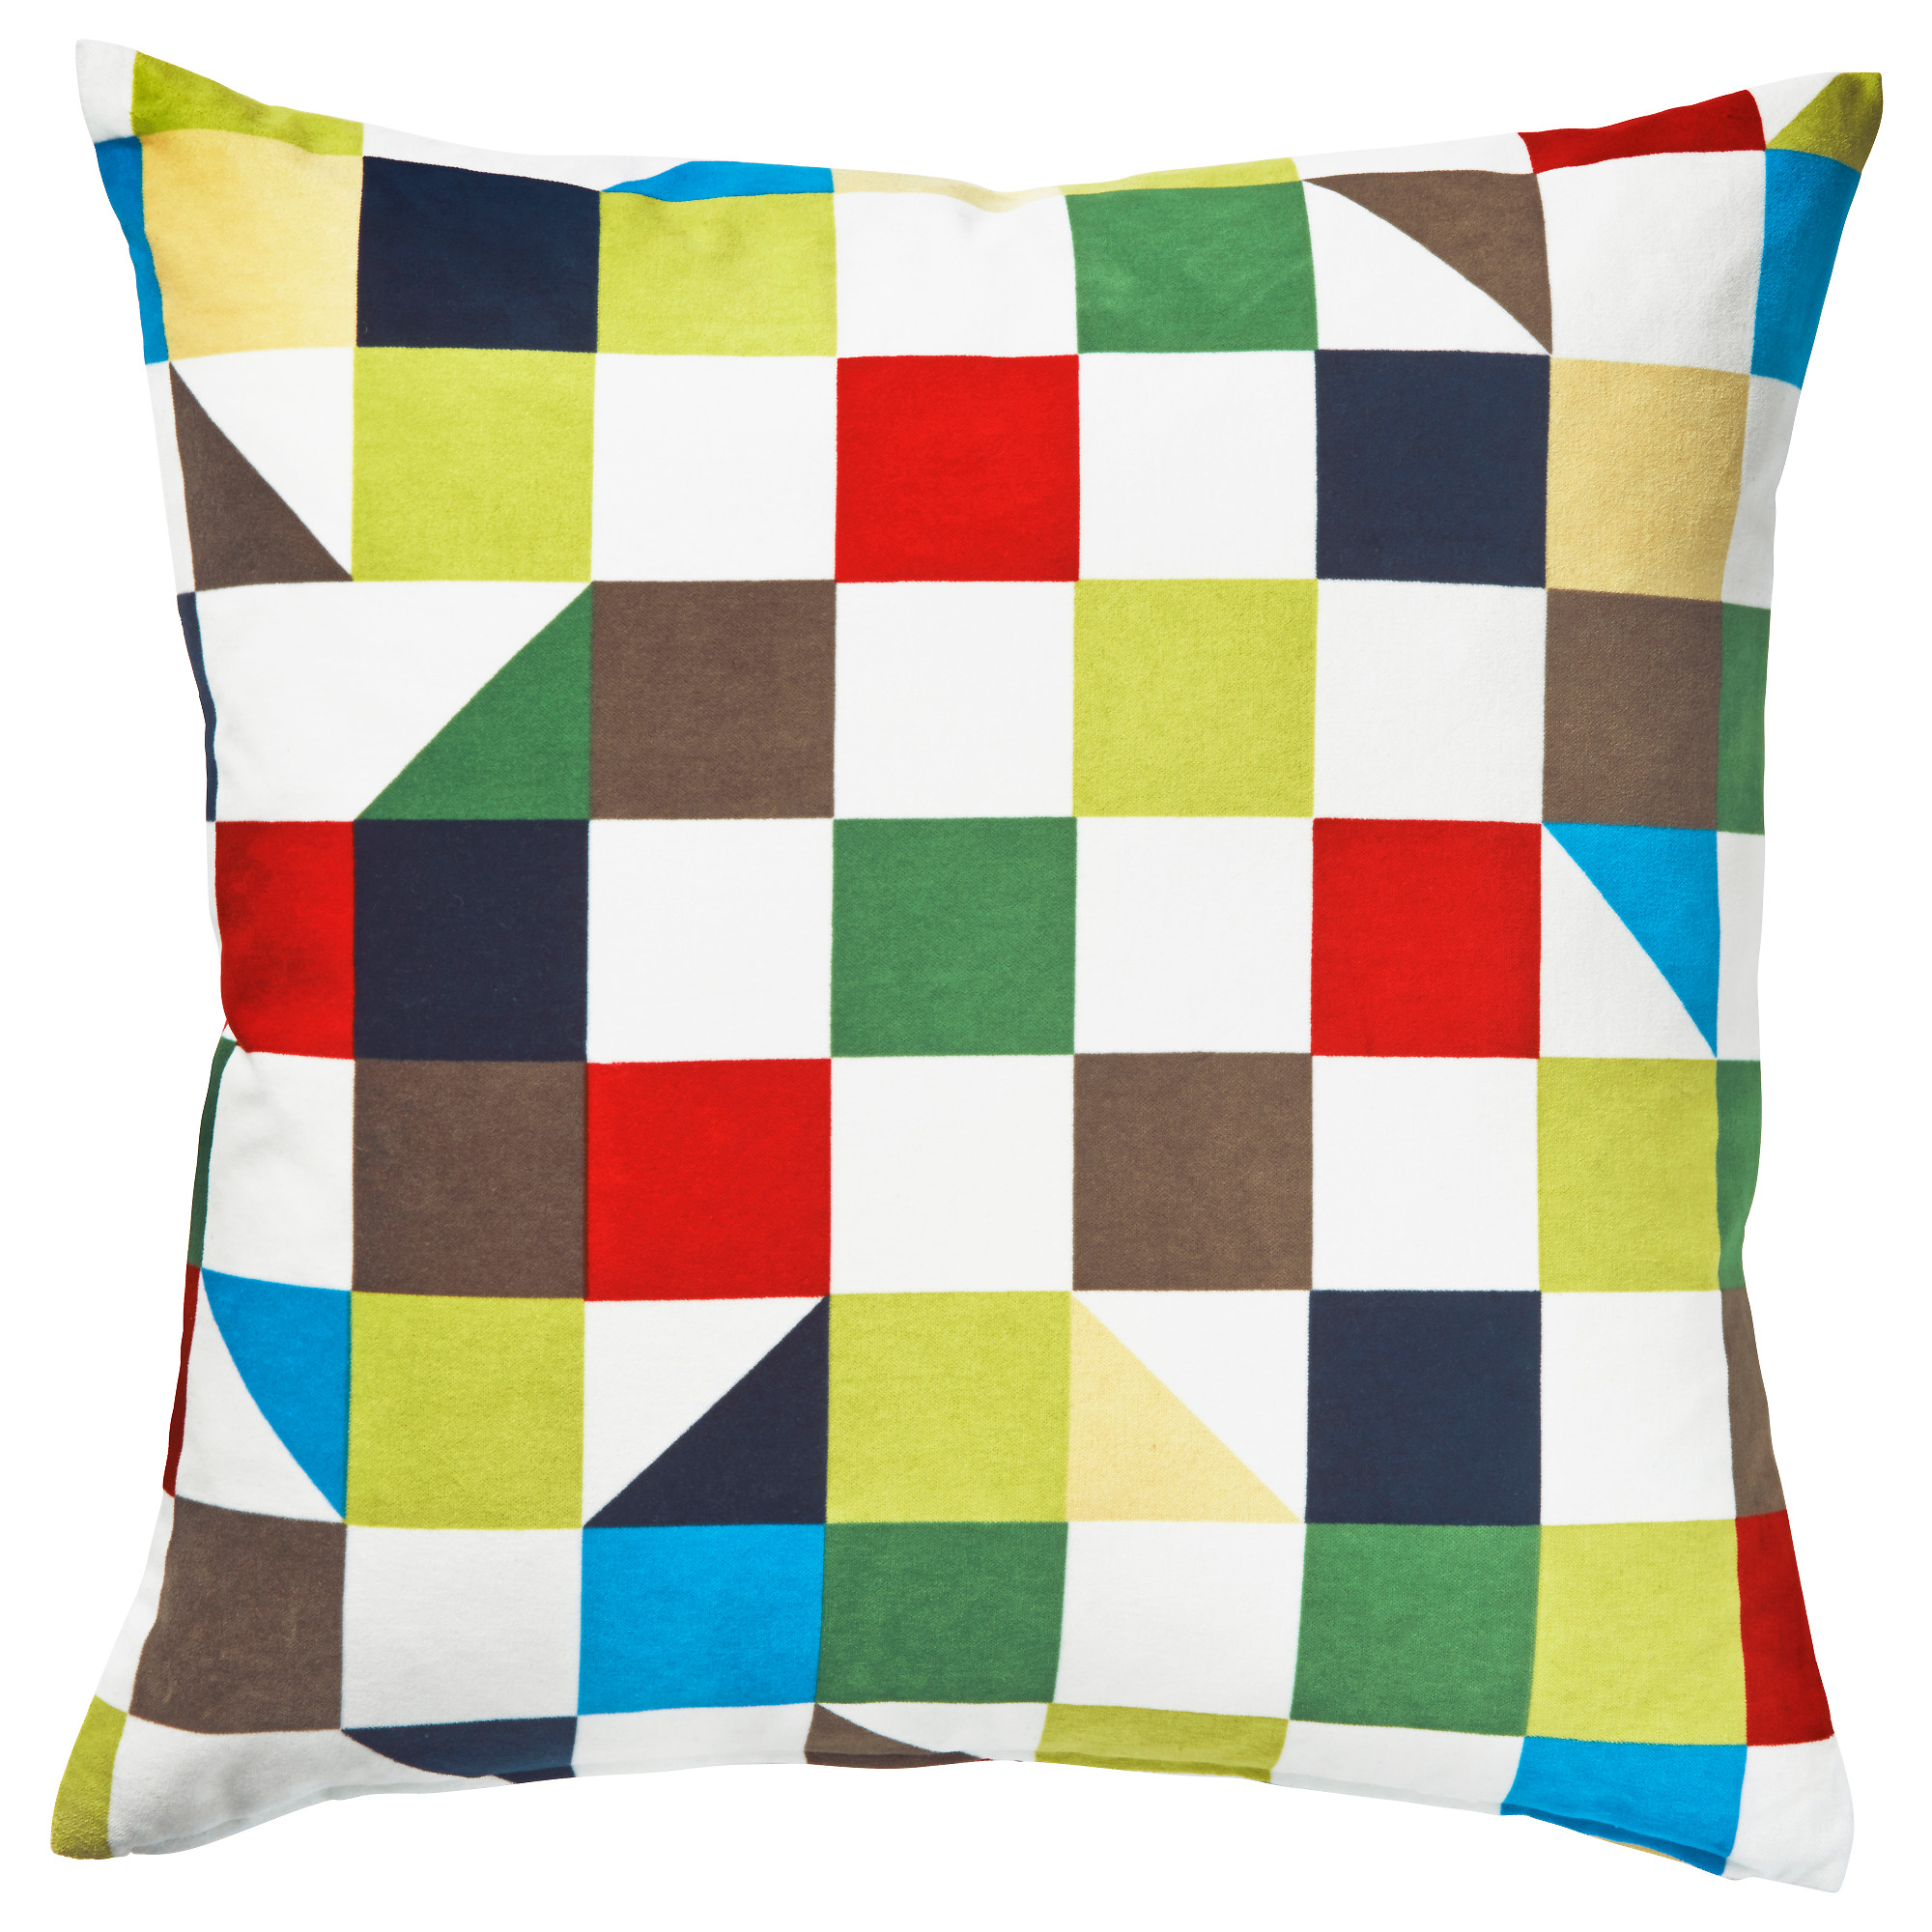 Throw Pillows for Bed | Cheap Throw Pillow Covers | Decorative Pillow Covers